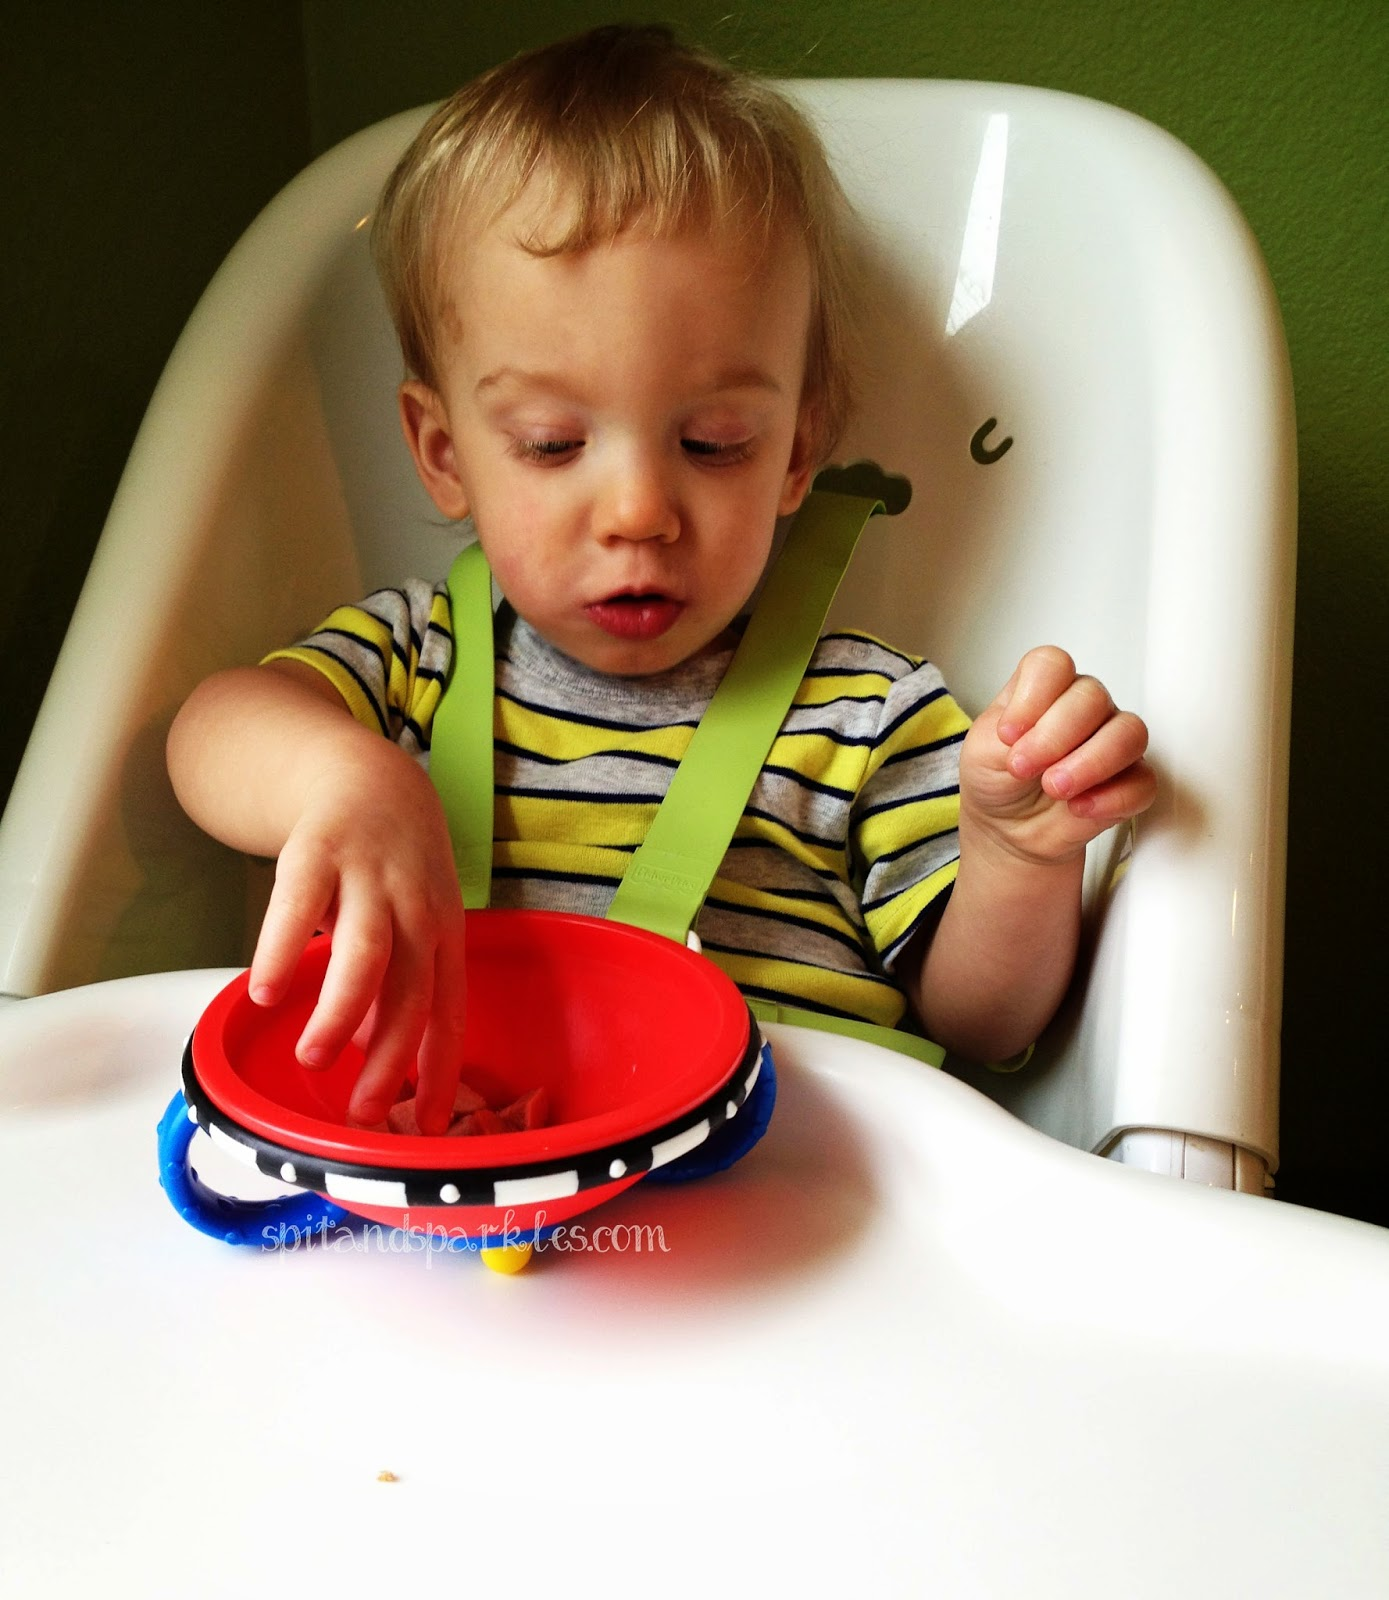 Trick your toddler into eating better with @NubyUSA Wacky Ware bowls! #parenting #toddlers